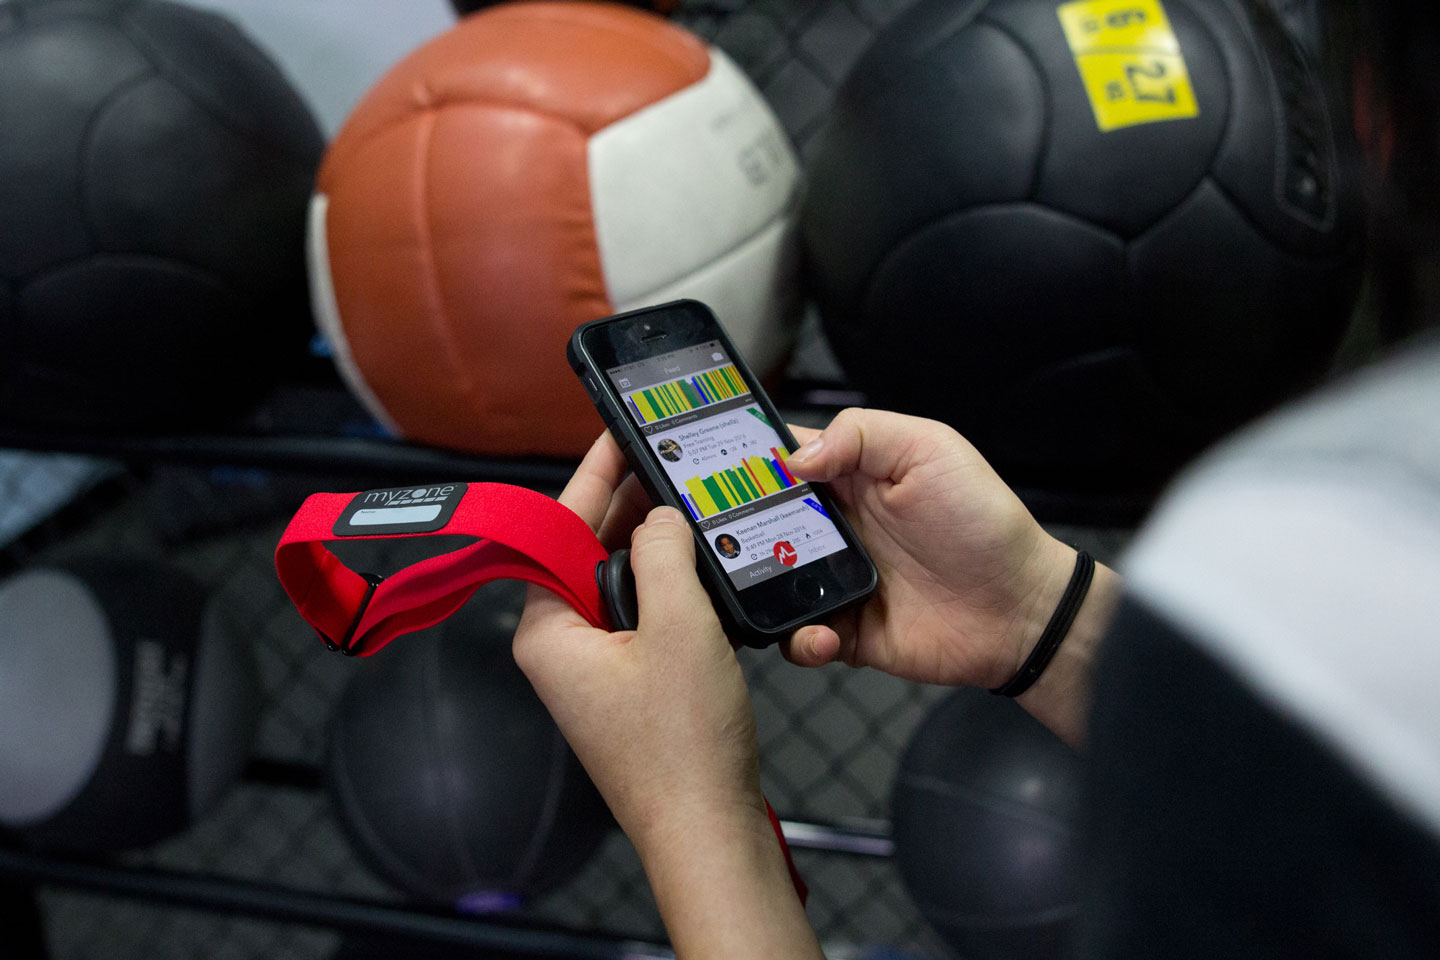 myzone classes at westpark fitness hands holding a smartphone and a red myzone fitness tracker belt in a gym